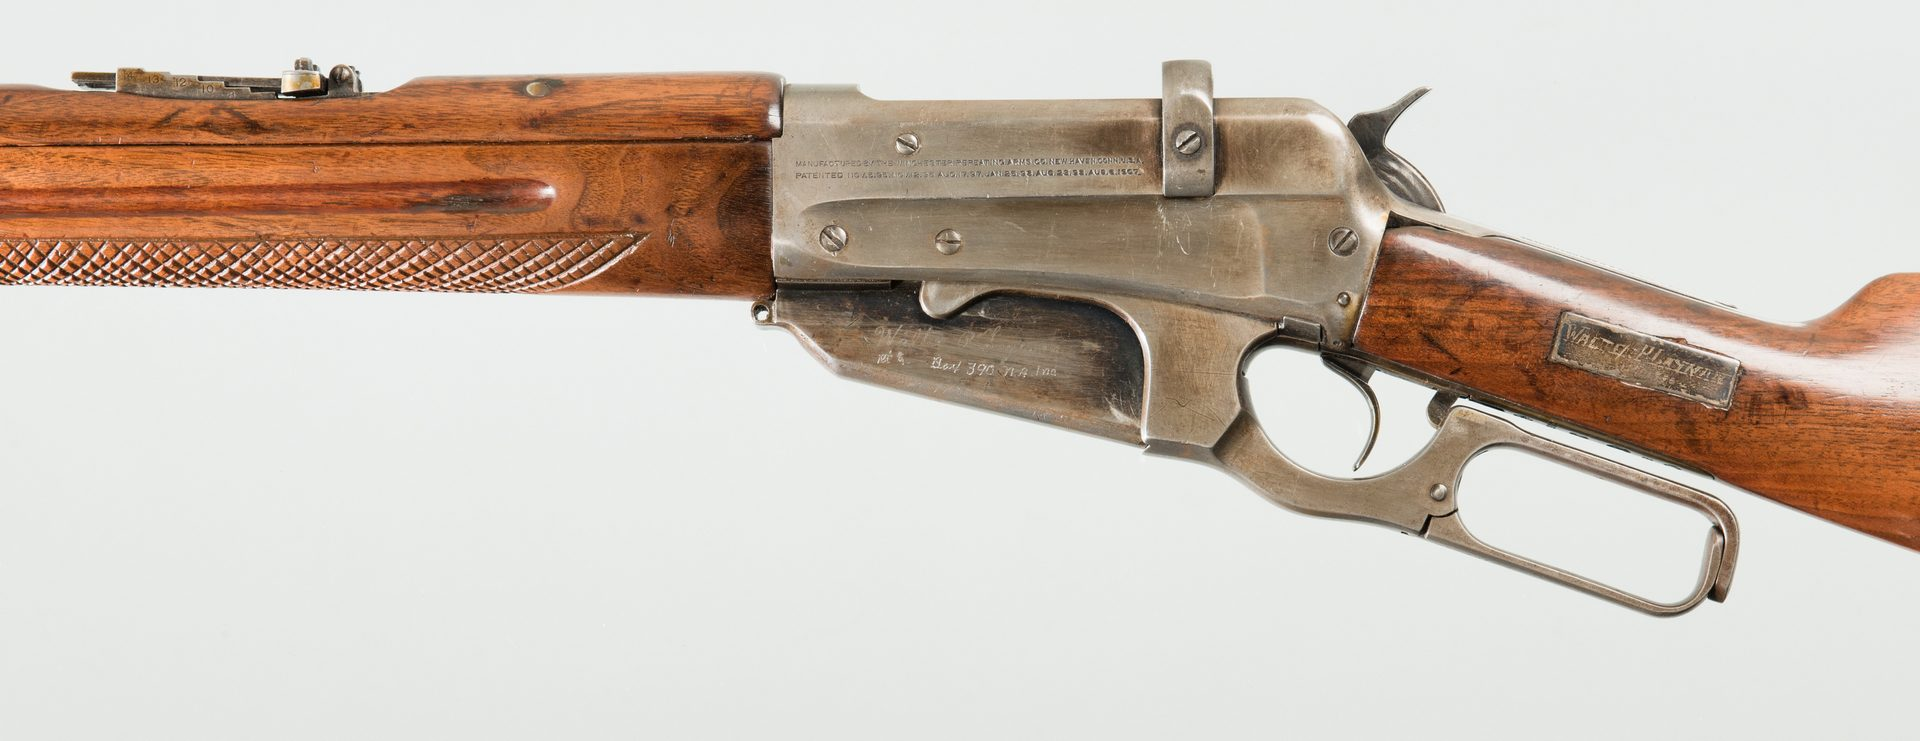 Lot 826: Winchester Model 1895 -7.62x54R Lever Action Rifle